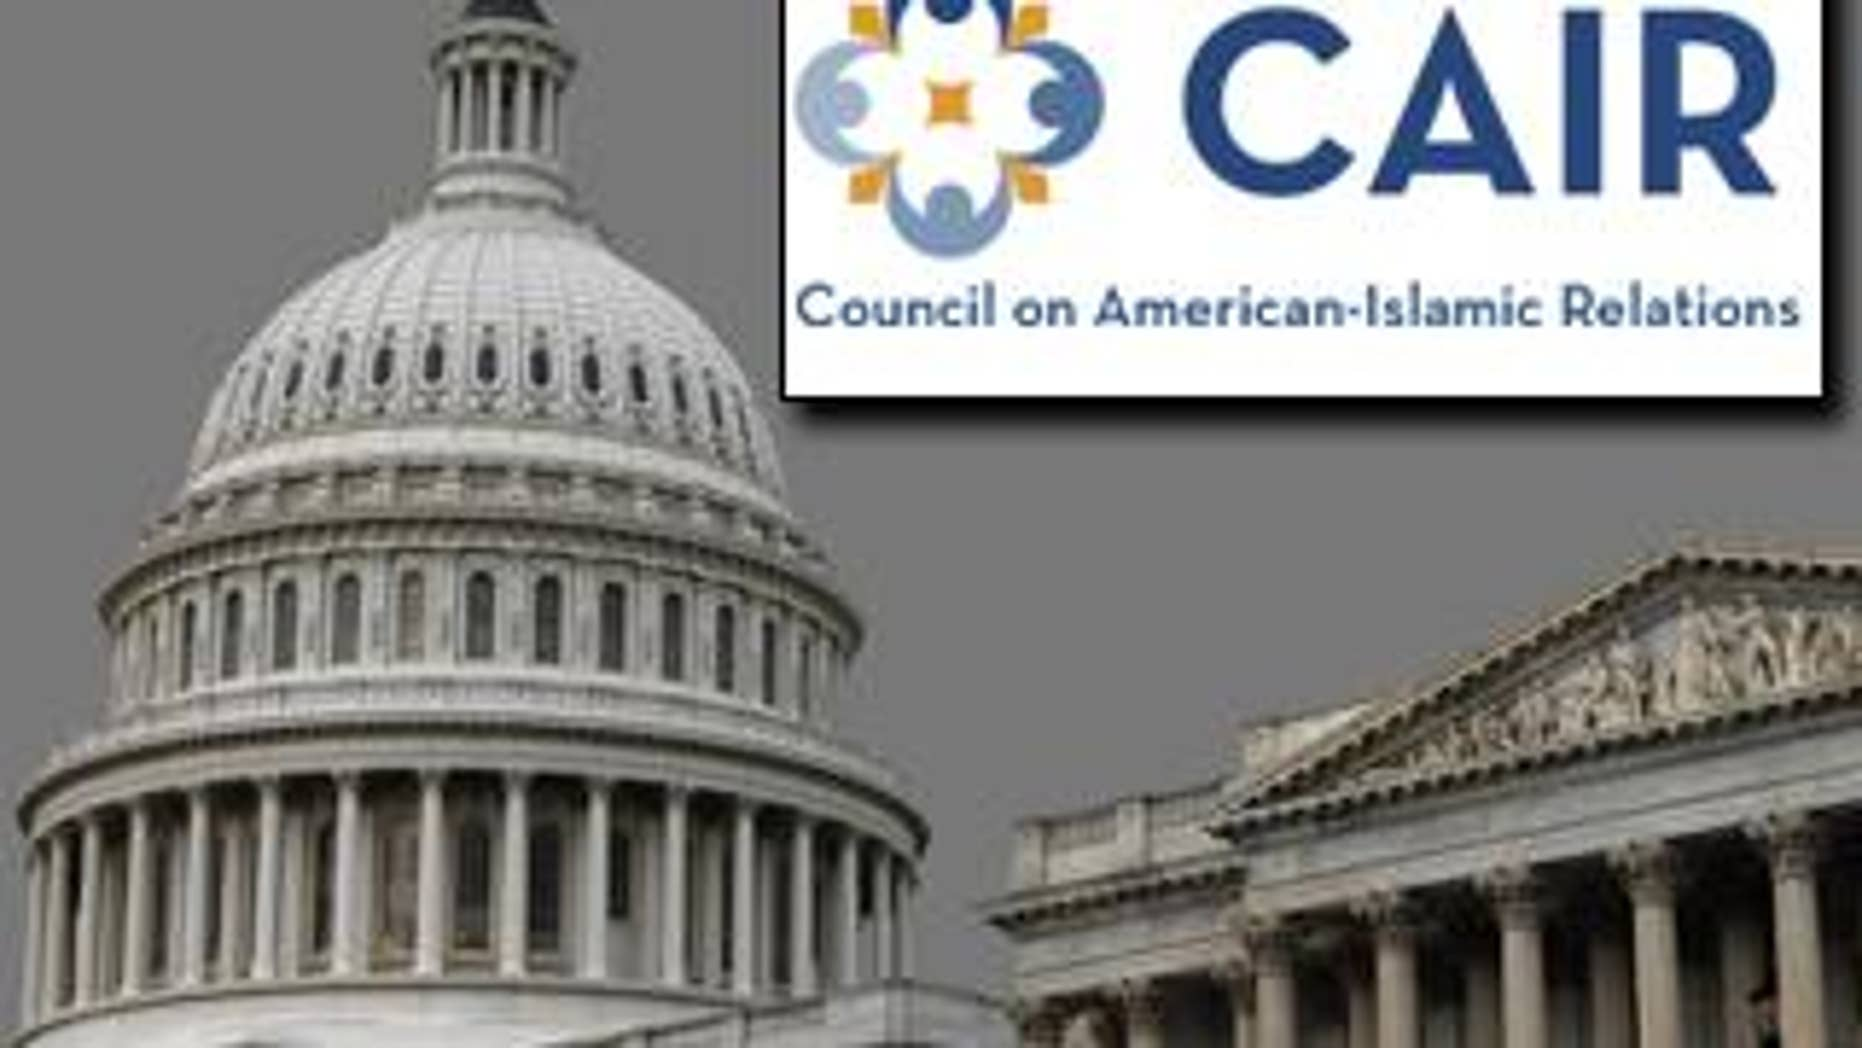 Us Group Cair Named Organization By United Arab Emirates